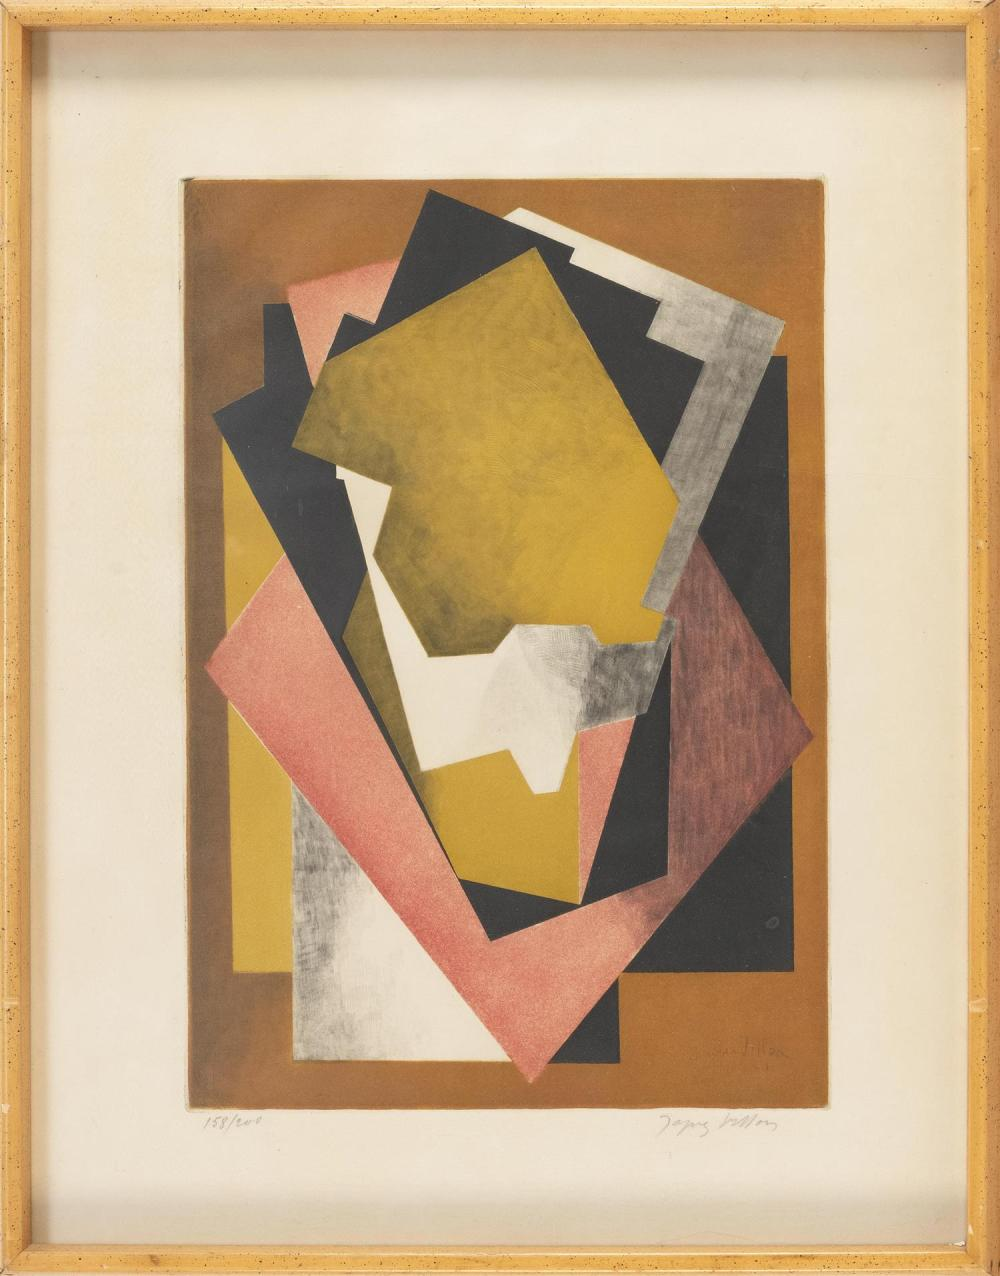 """JACQUES VILLON, France, 1875-1963, """"Composition""""., Aquatint etching, 19"""" x 13"""" to the plate line. Framed 28"""" x 21""""."""